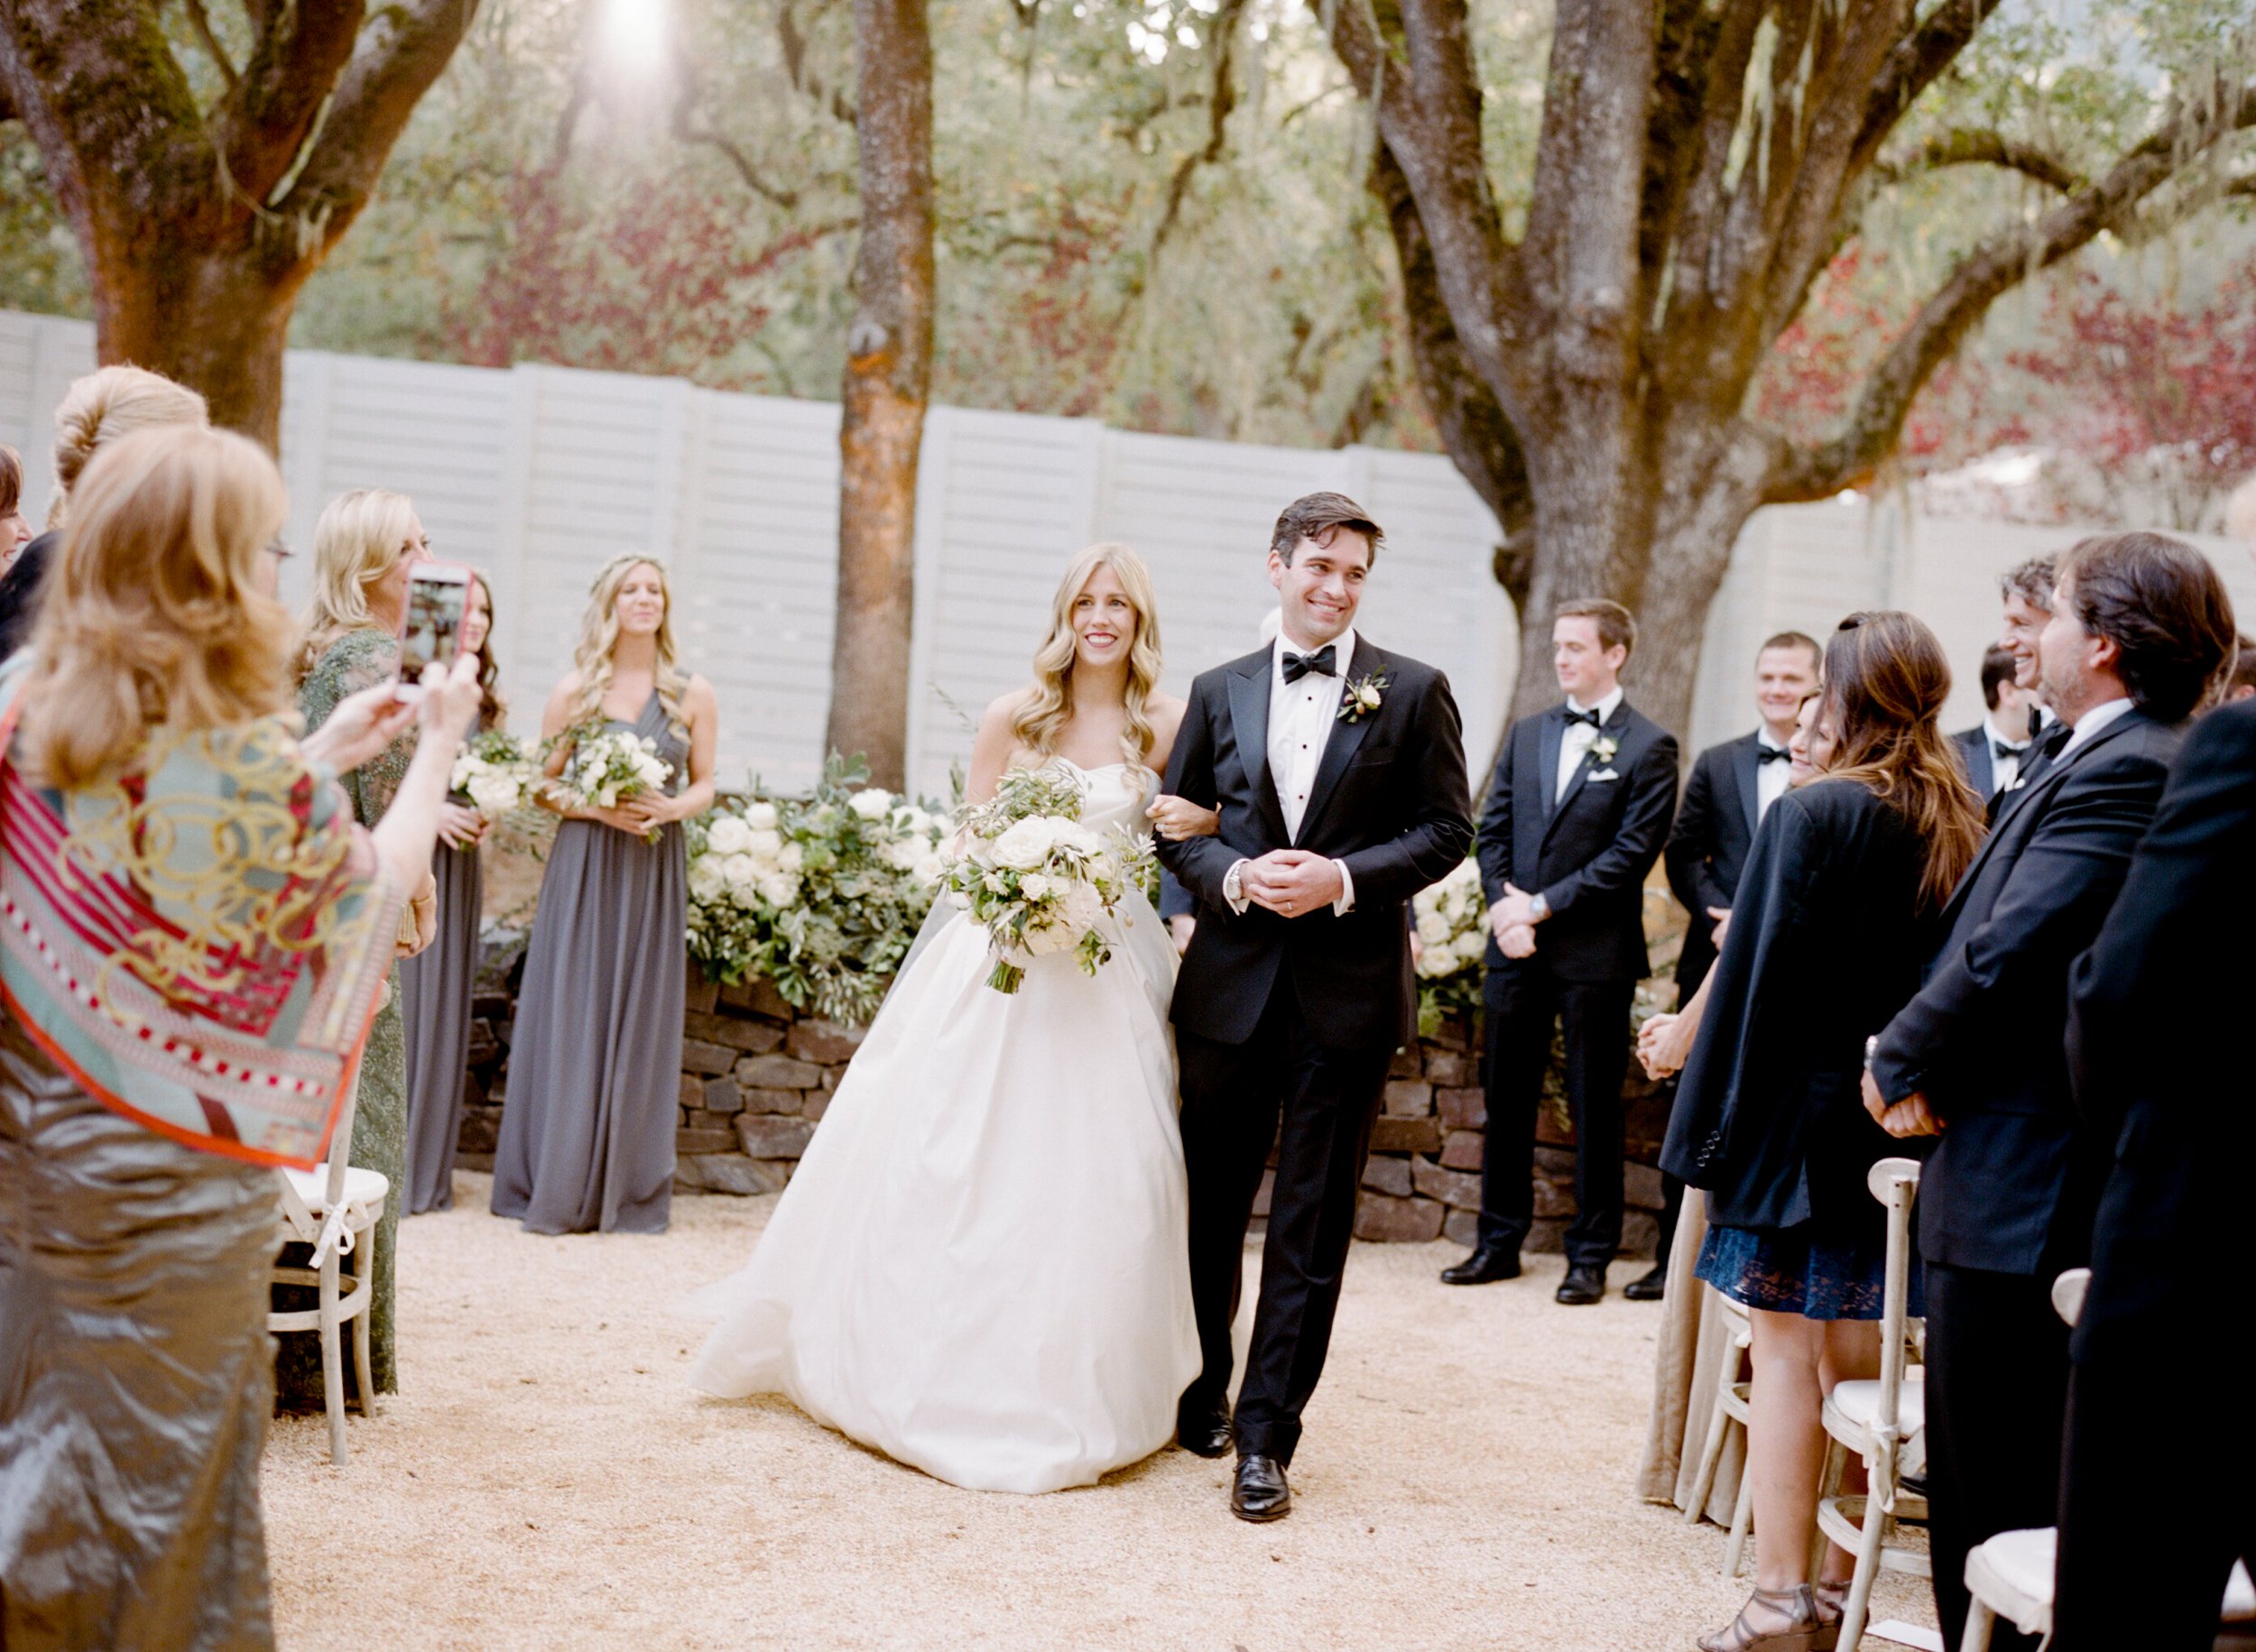 Bride and groom walk down the aisle just married; Sylvie Gil Photography